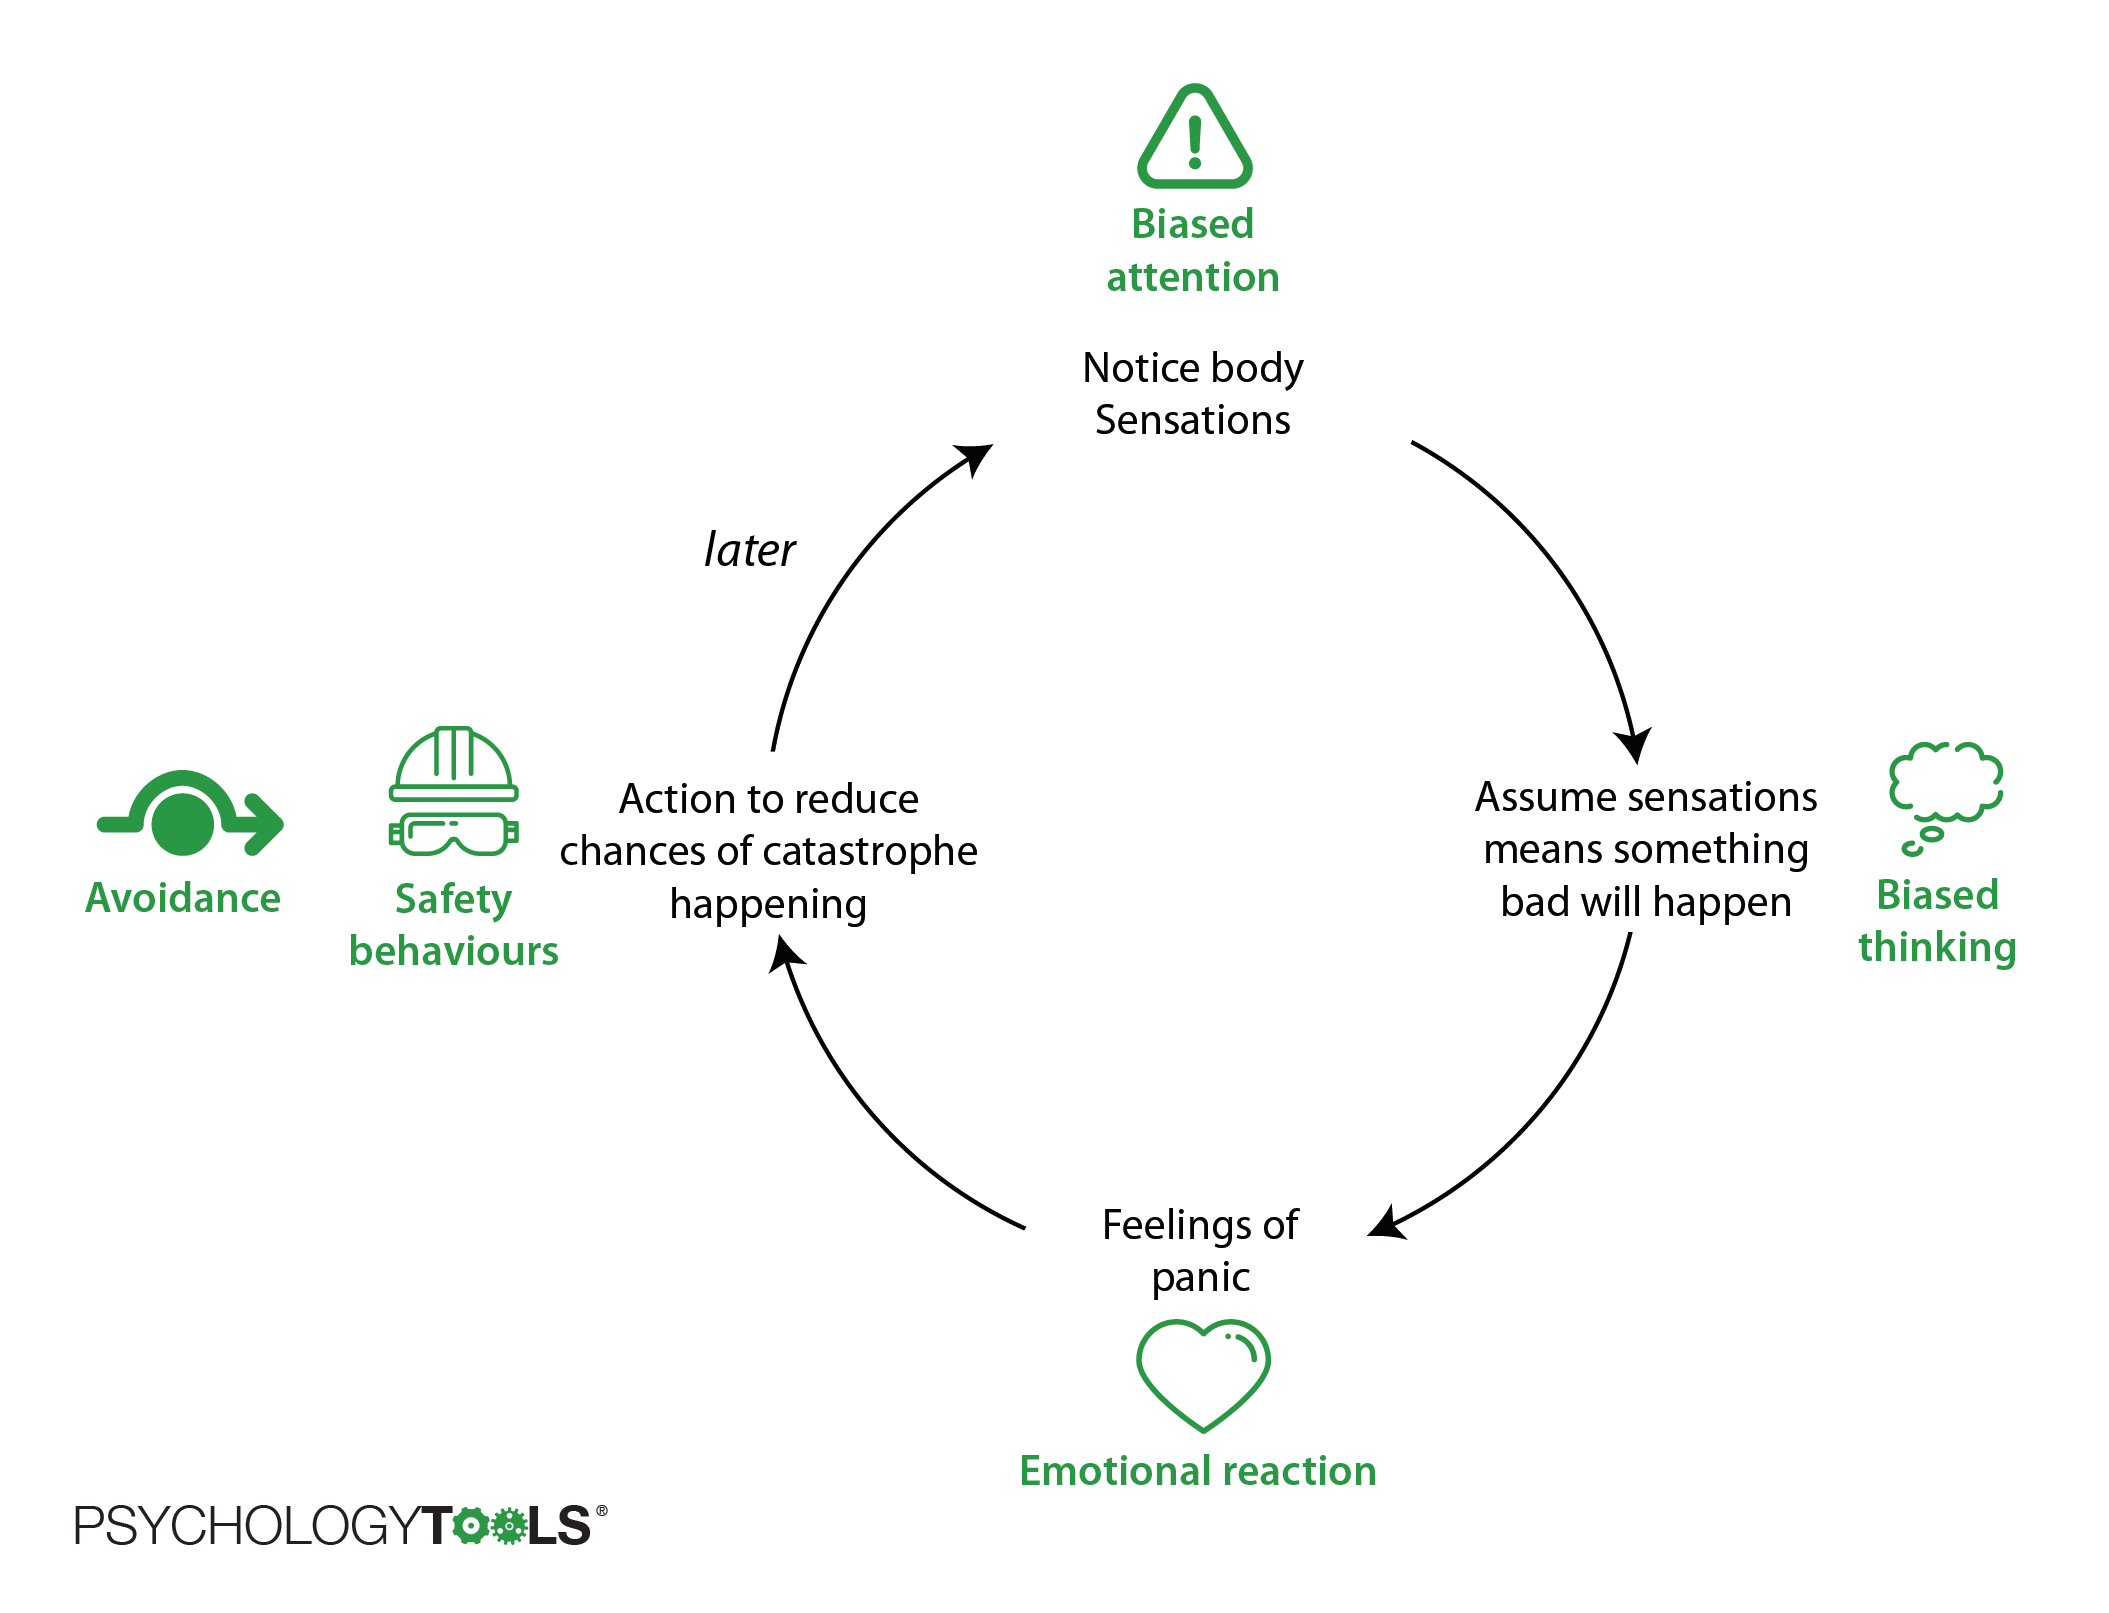 CBT panic attack cycle